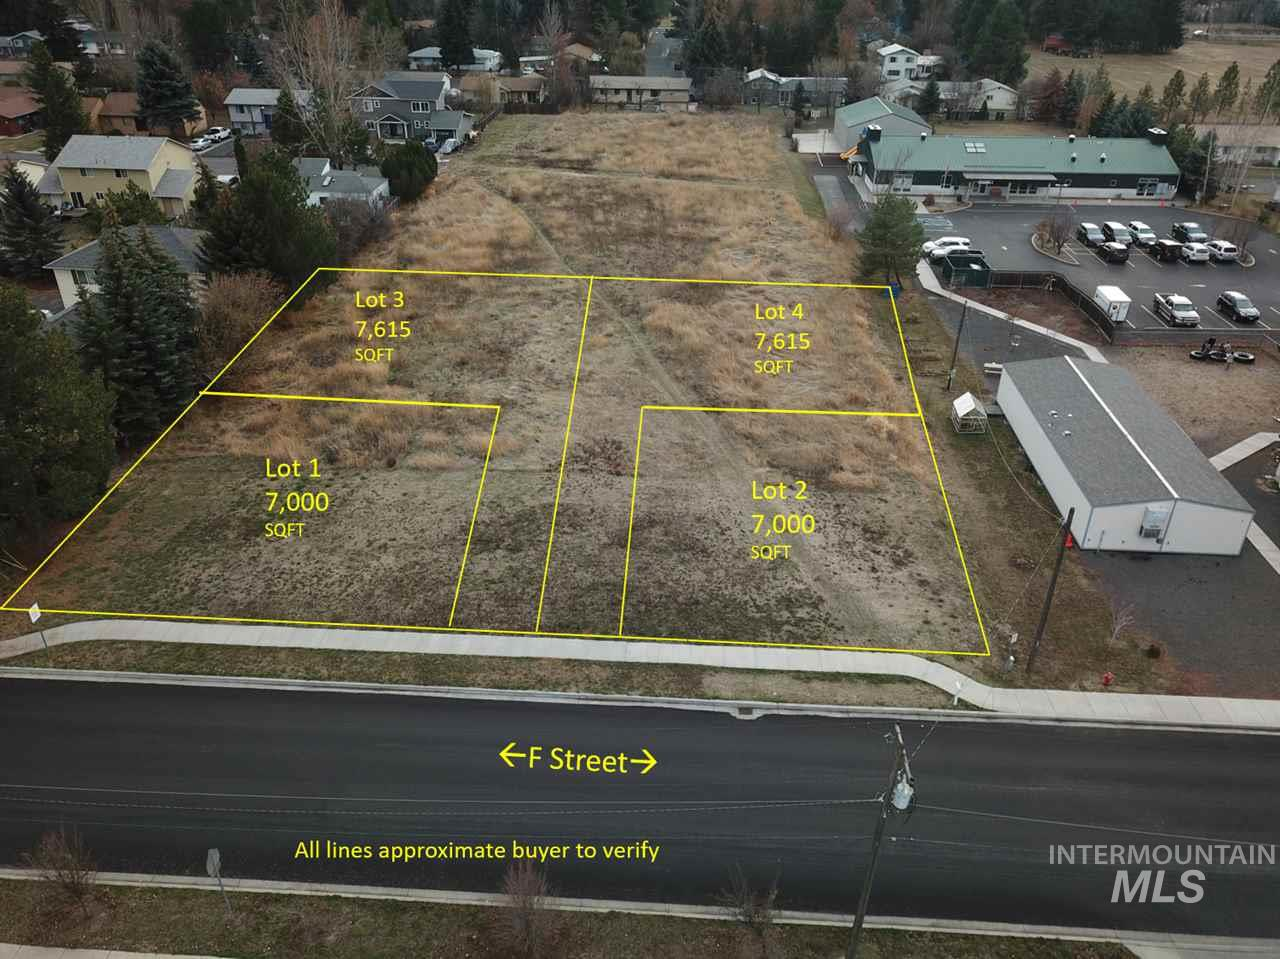 000 F Street Parcel #1 Property Photo - Moscow, ID real estate listing